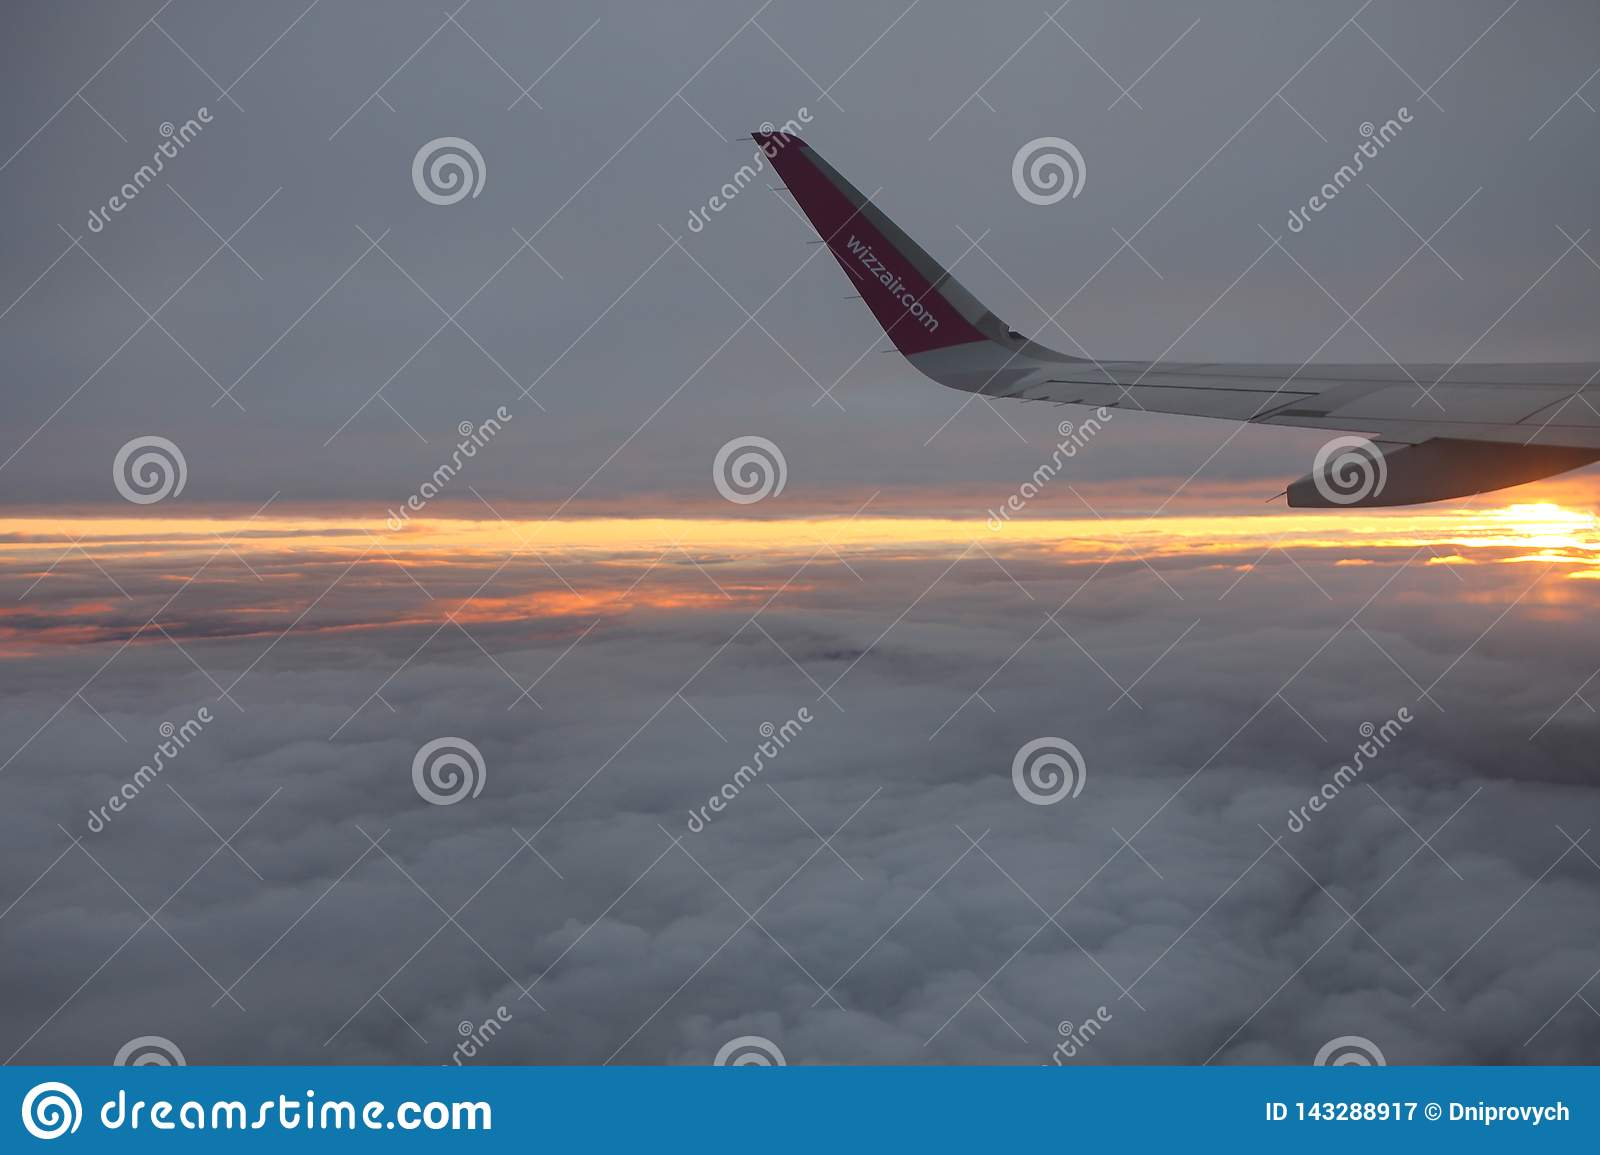 Travelling with Wizzair. Beatiful colorful sunset